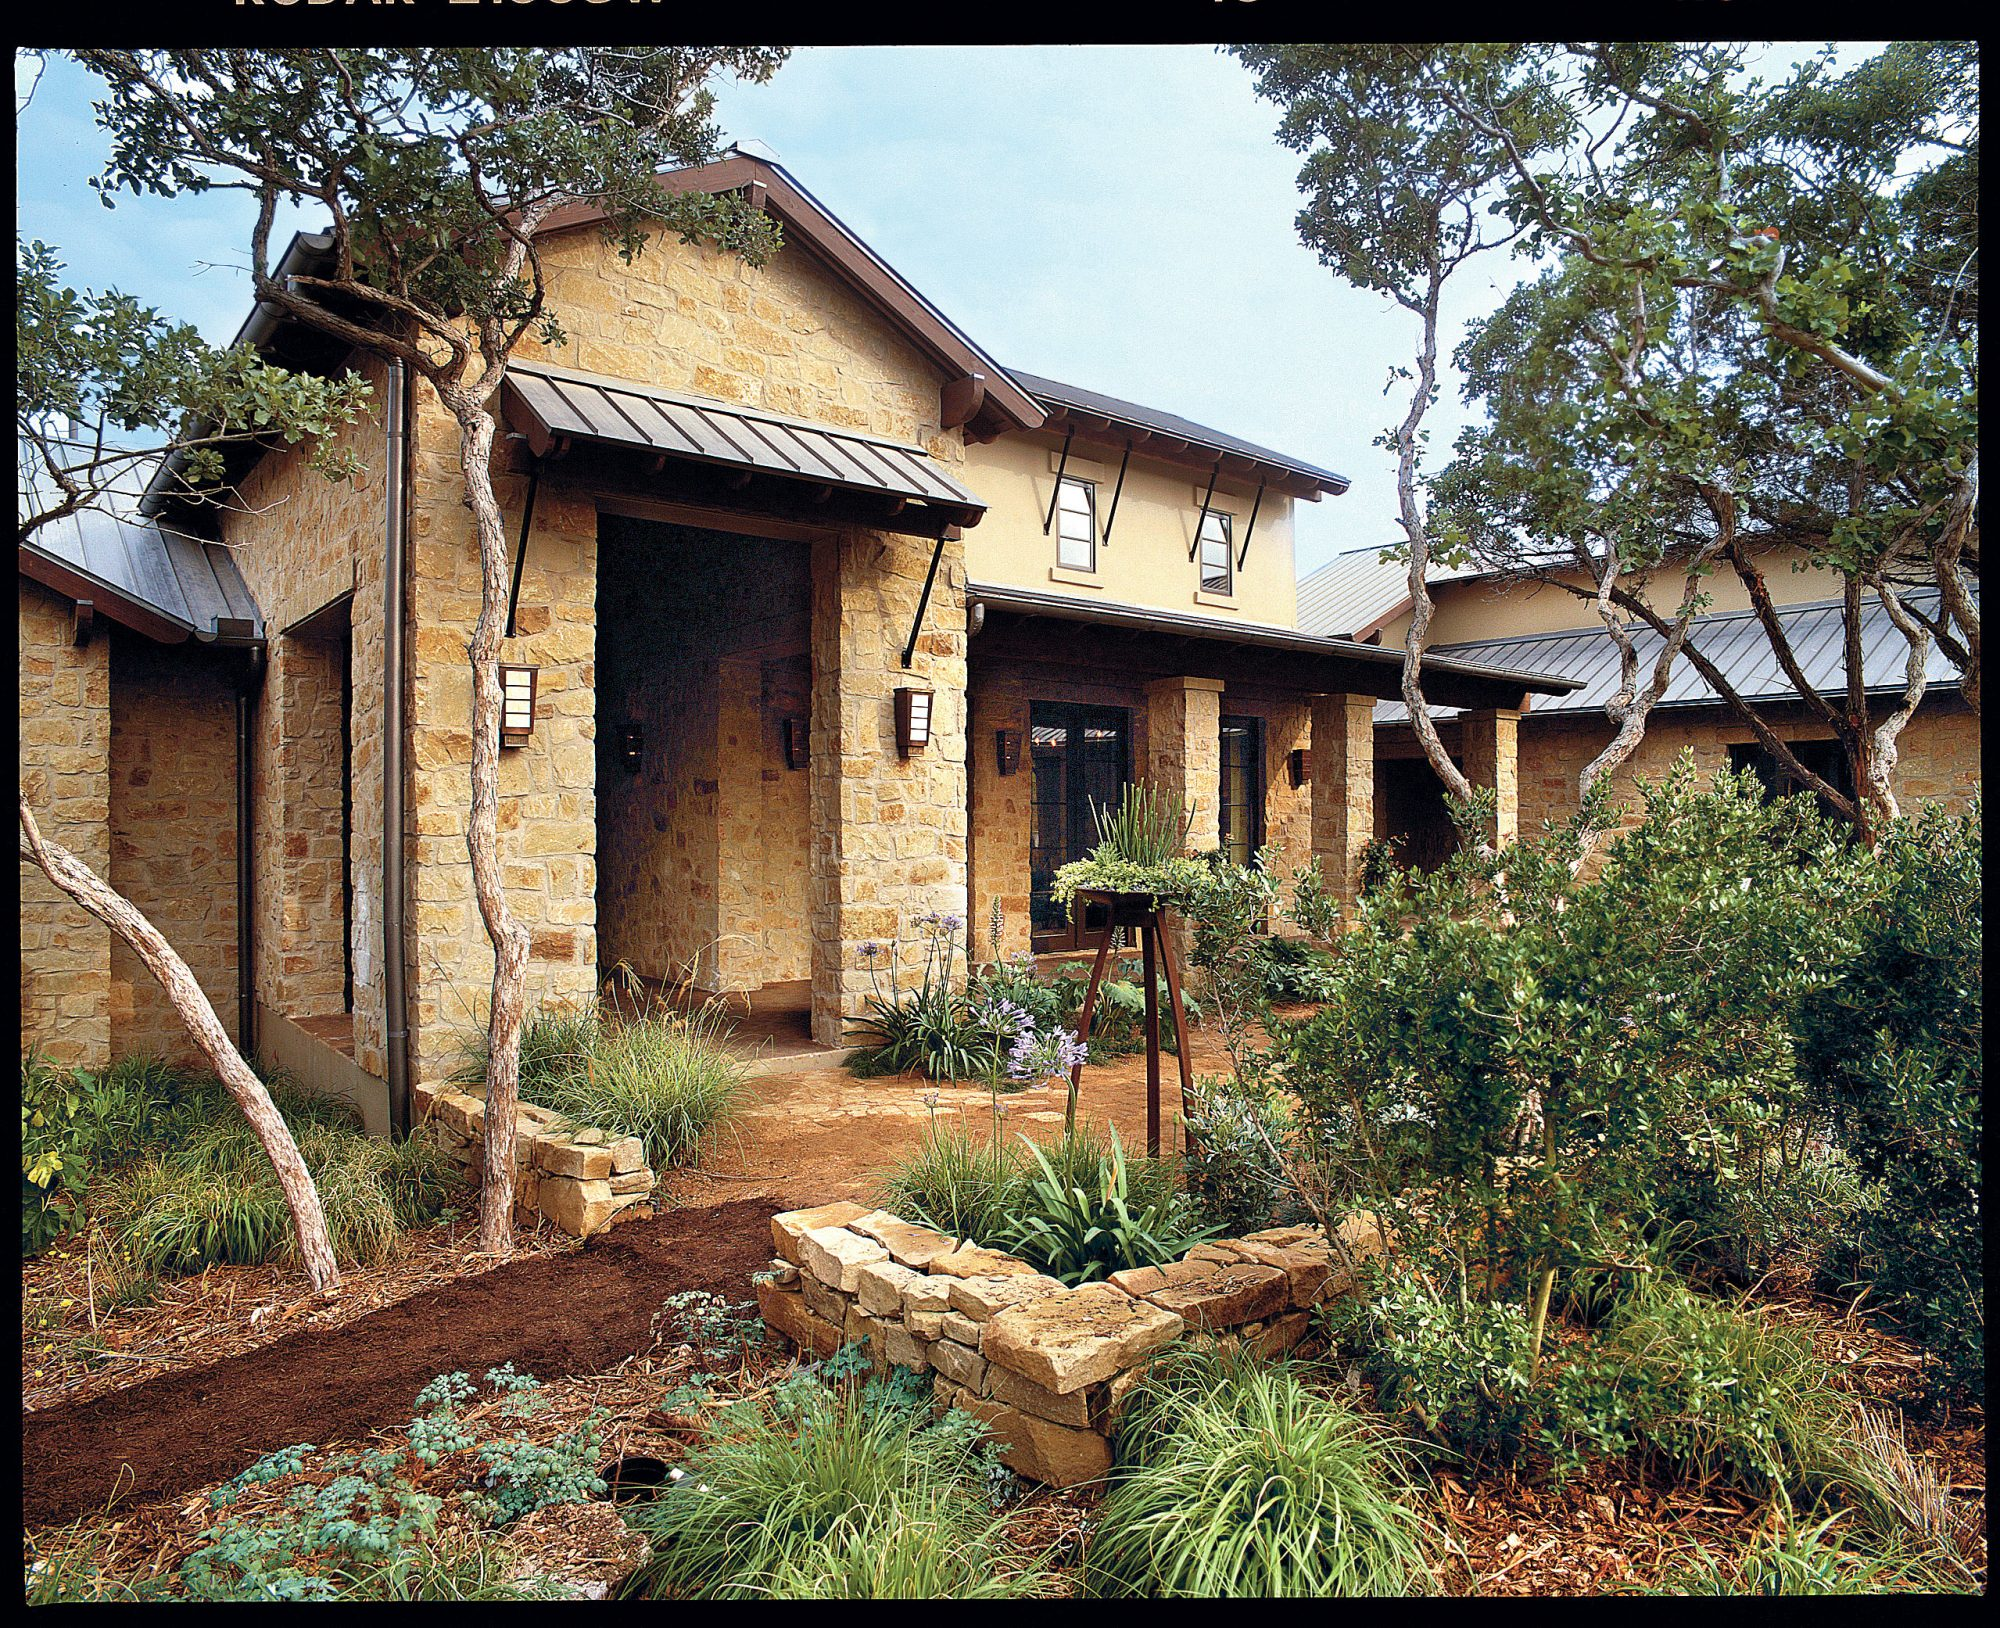 2003 Idea House: Harrod's Creek (promo image)